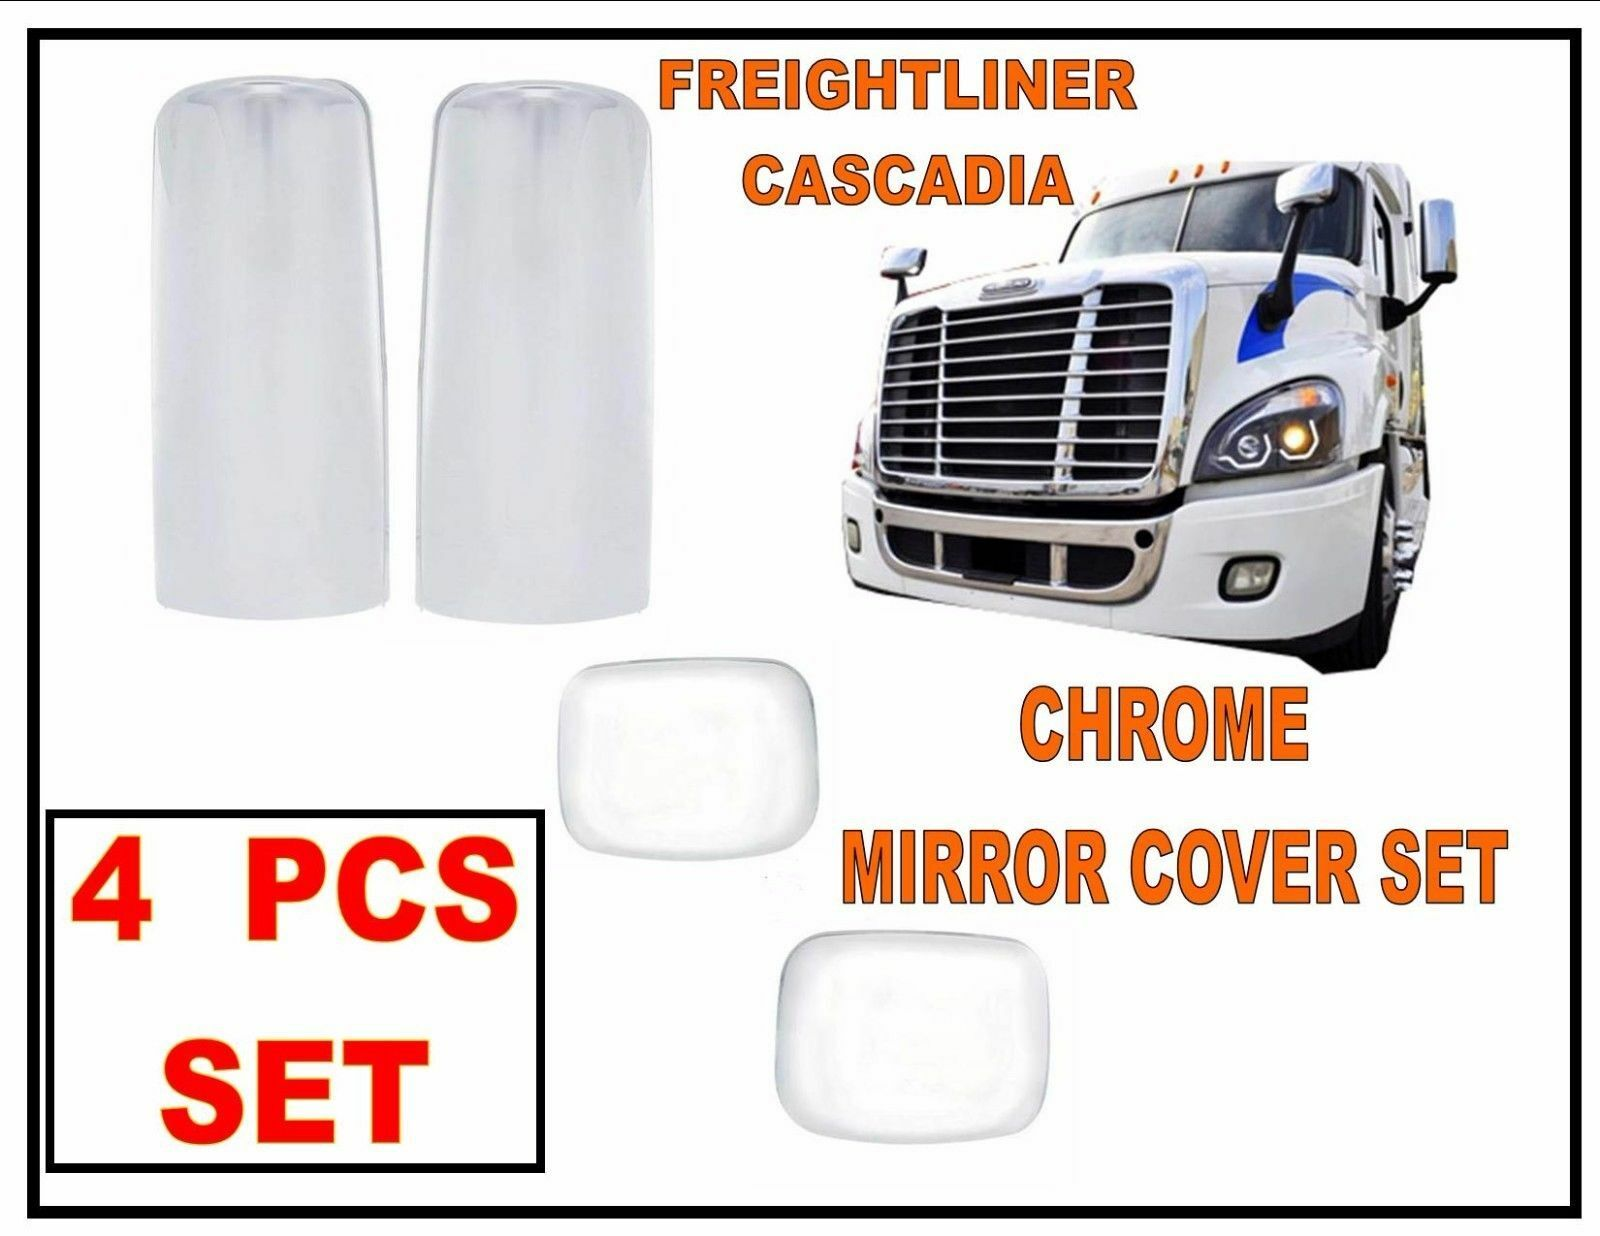 Freightliner Cascadia Chrome Mirror Cover  Set TL28713 /& TL28712